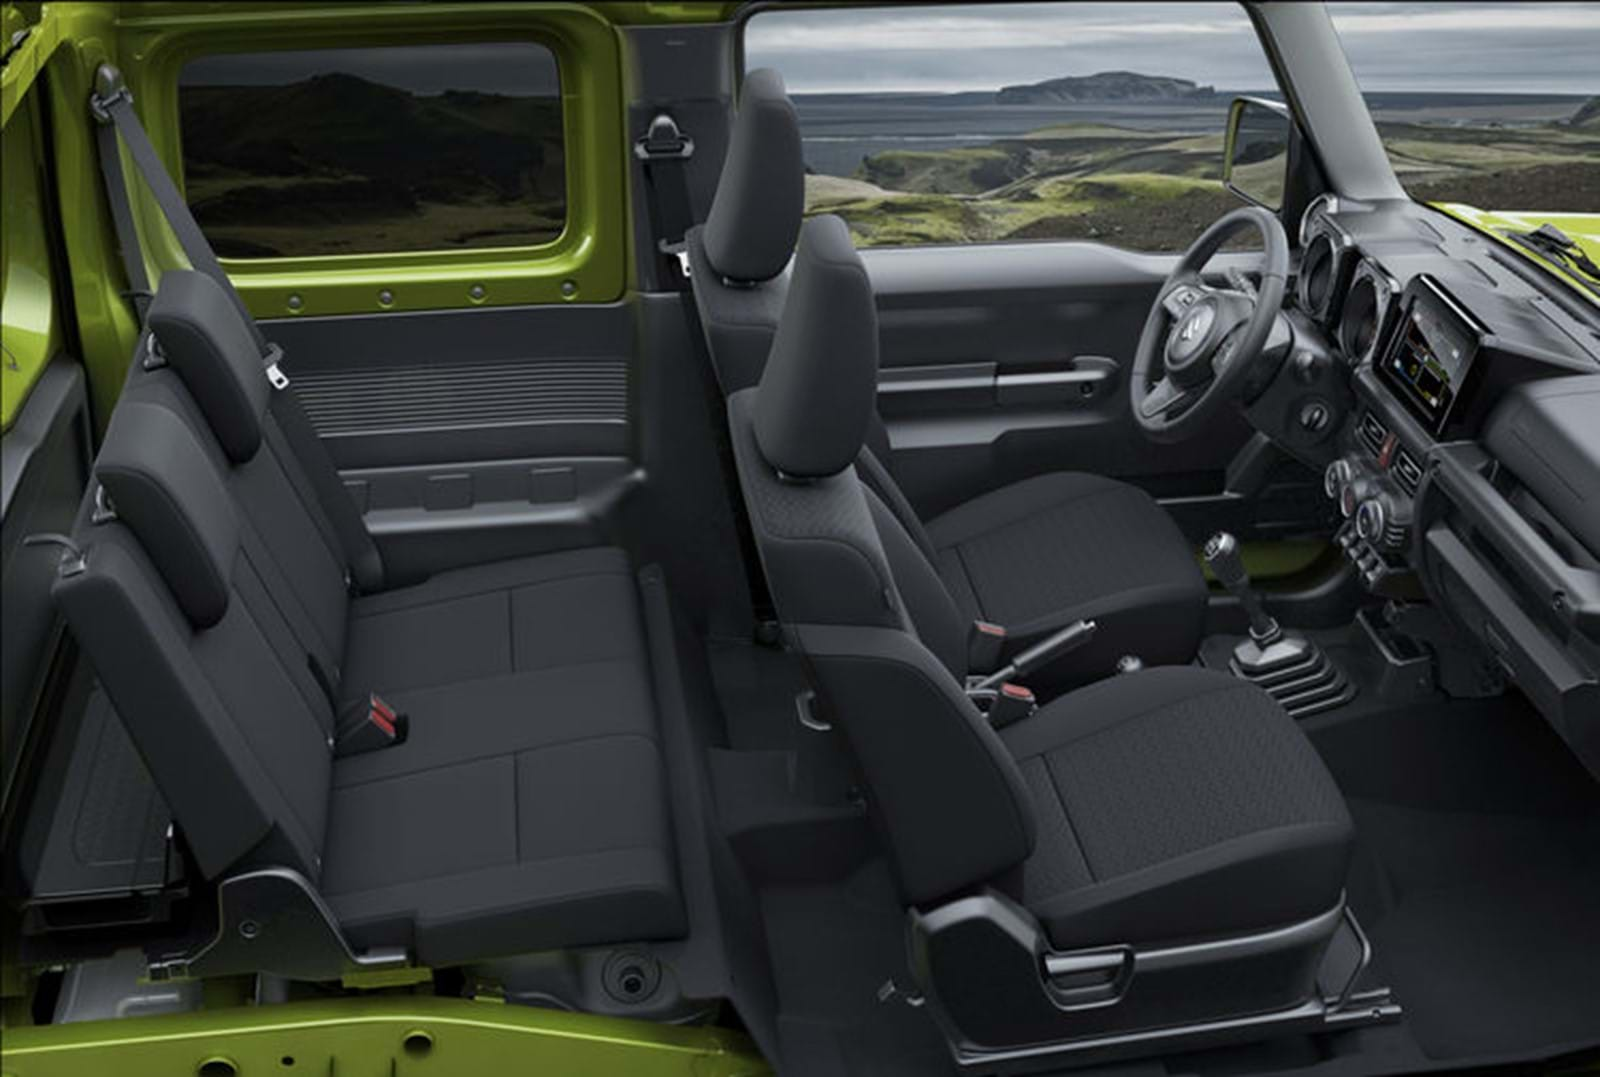 2019 Suzuki Jimny: News, Design, Release >> The New Suzuki Jimny Small Suv Off Road Car Suzuki Cars Uk